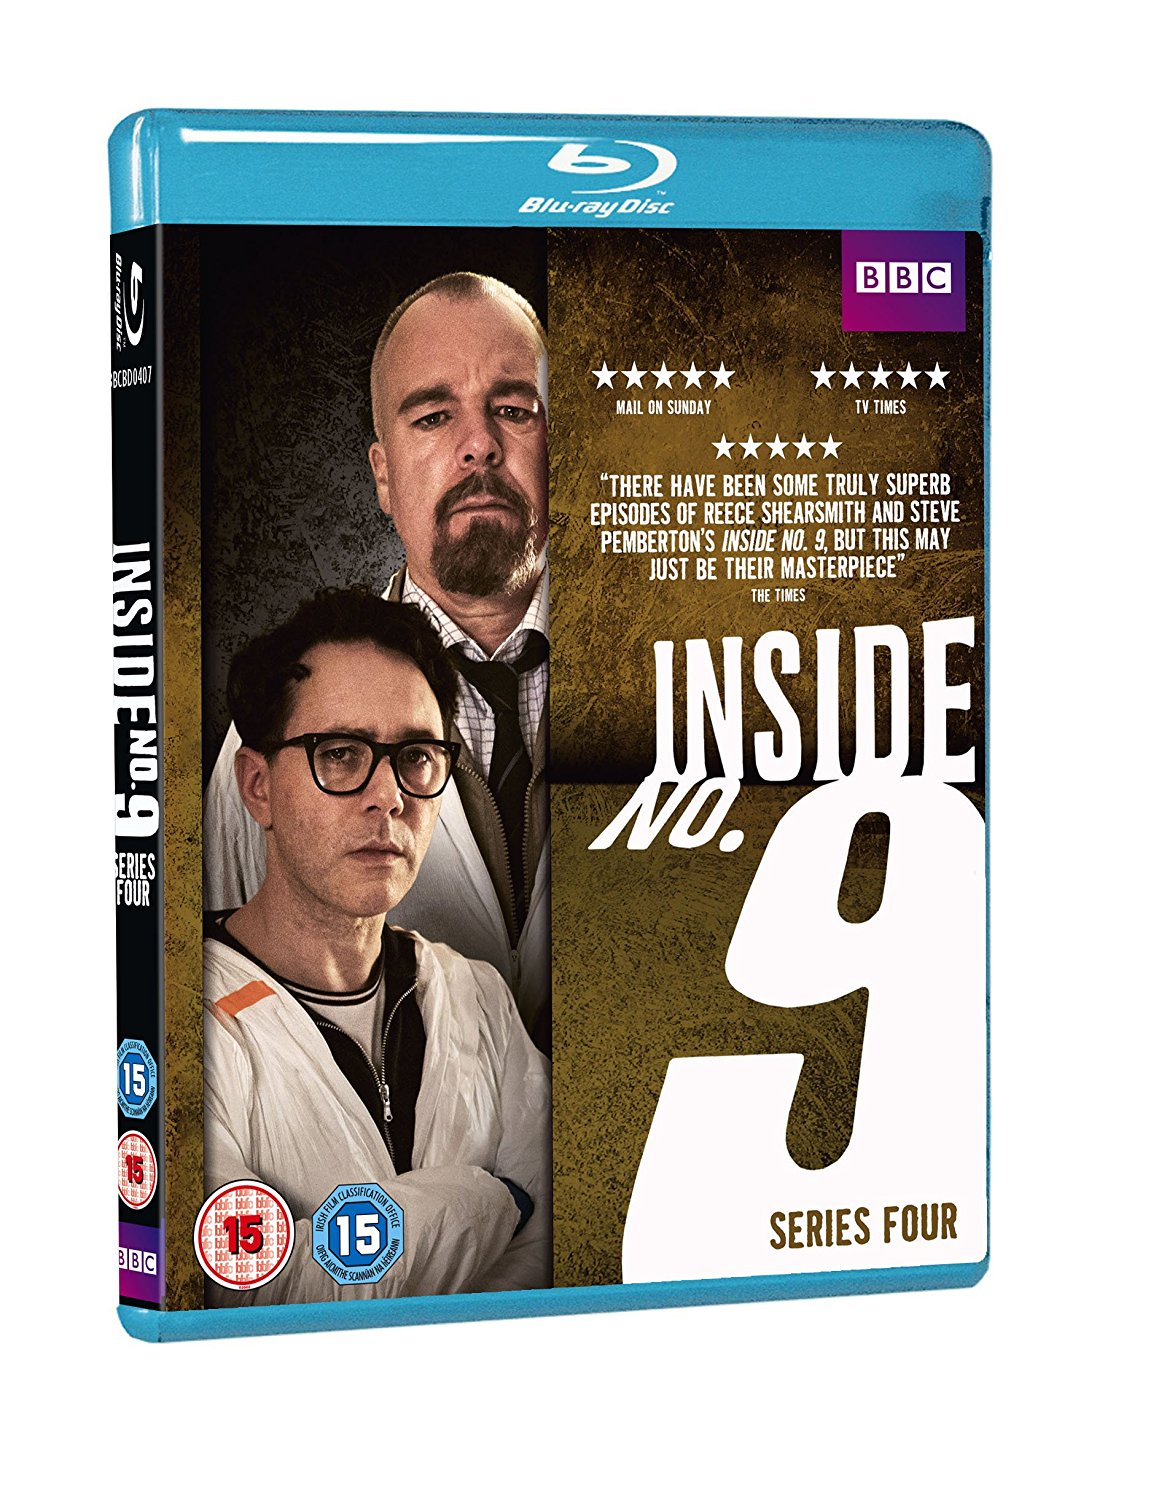 Inside No. 9 Series 4 review: does the anthology series continue to wow?